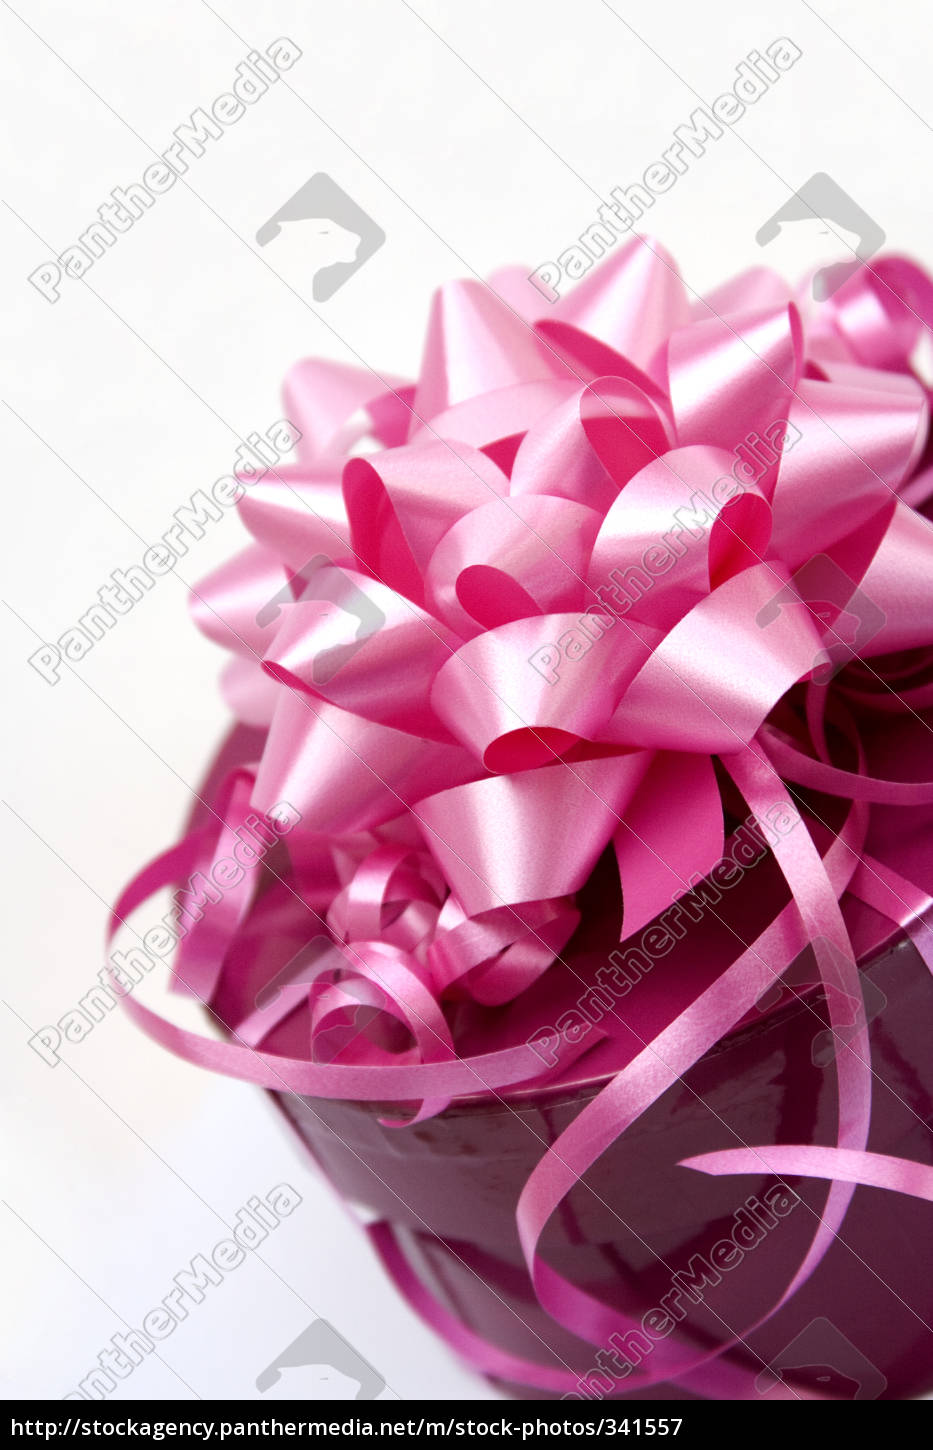 the, gift - 341557